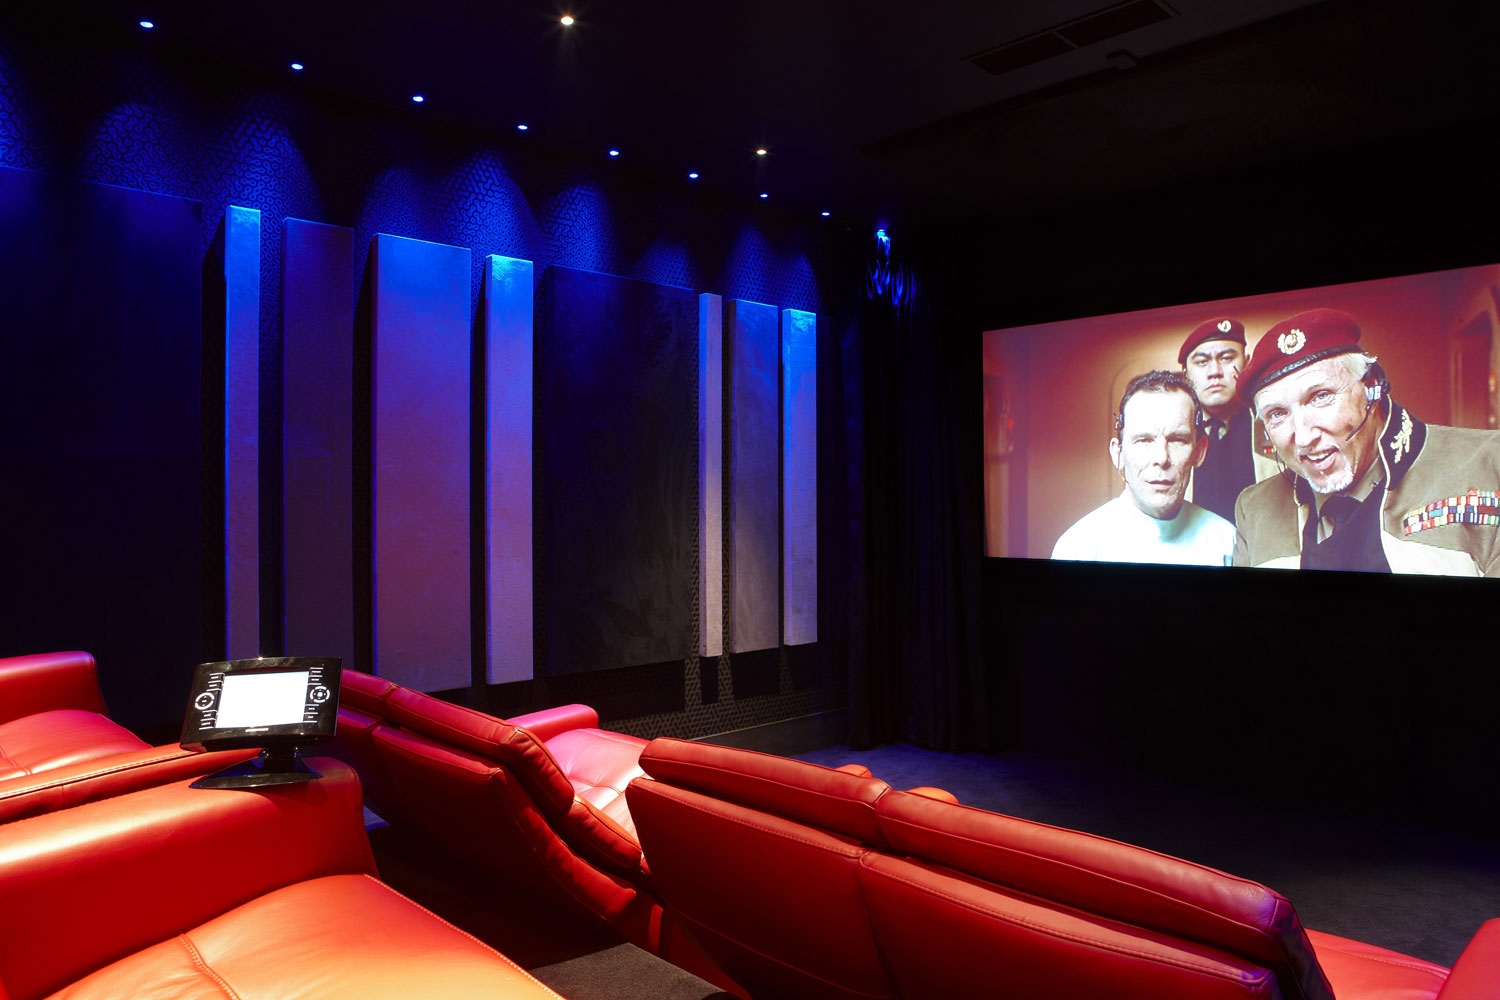 Private Residence Cinema Room, Northwood, London |Residential Photographer London | Interior Photographer London